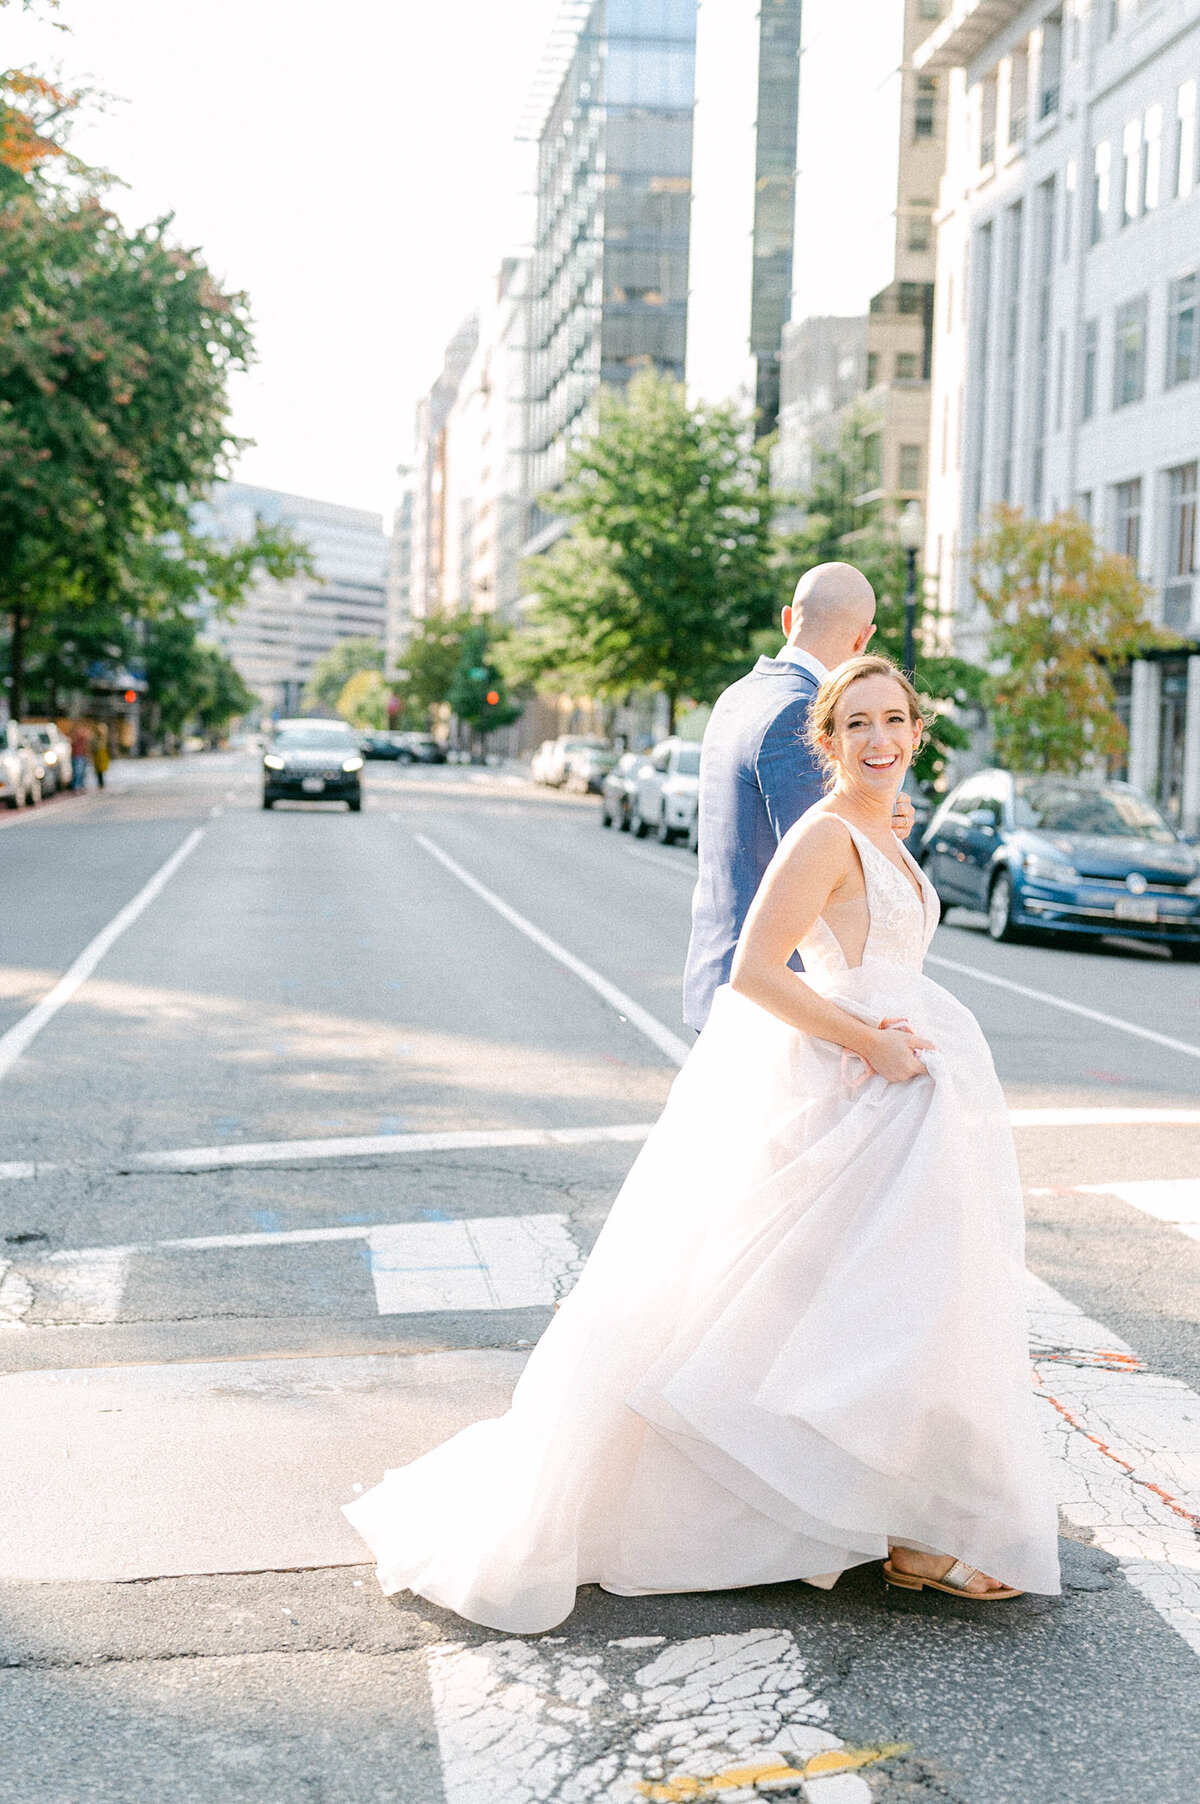 Jennifer Bosak Photography - DC Area Wedding Photography - DC, Virginia, Maryland - Jeanna + Michael - Decatur House Wedding - 19